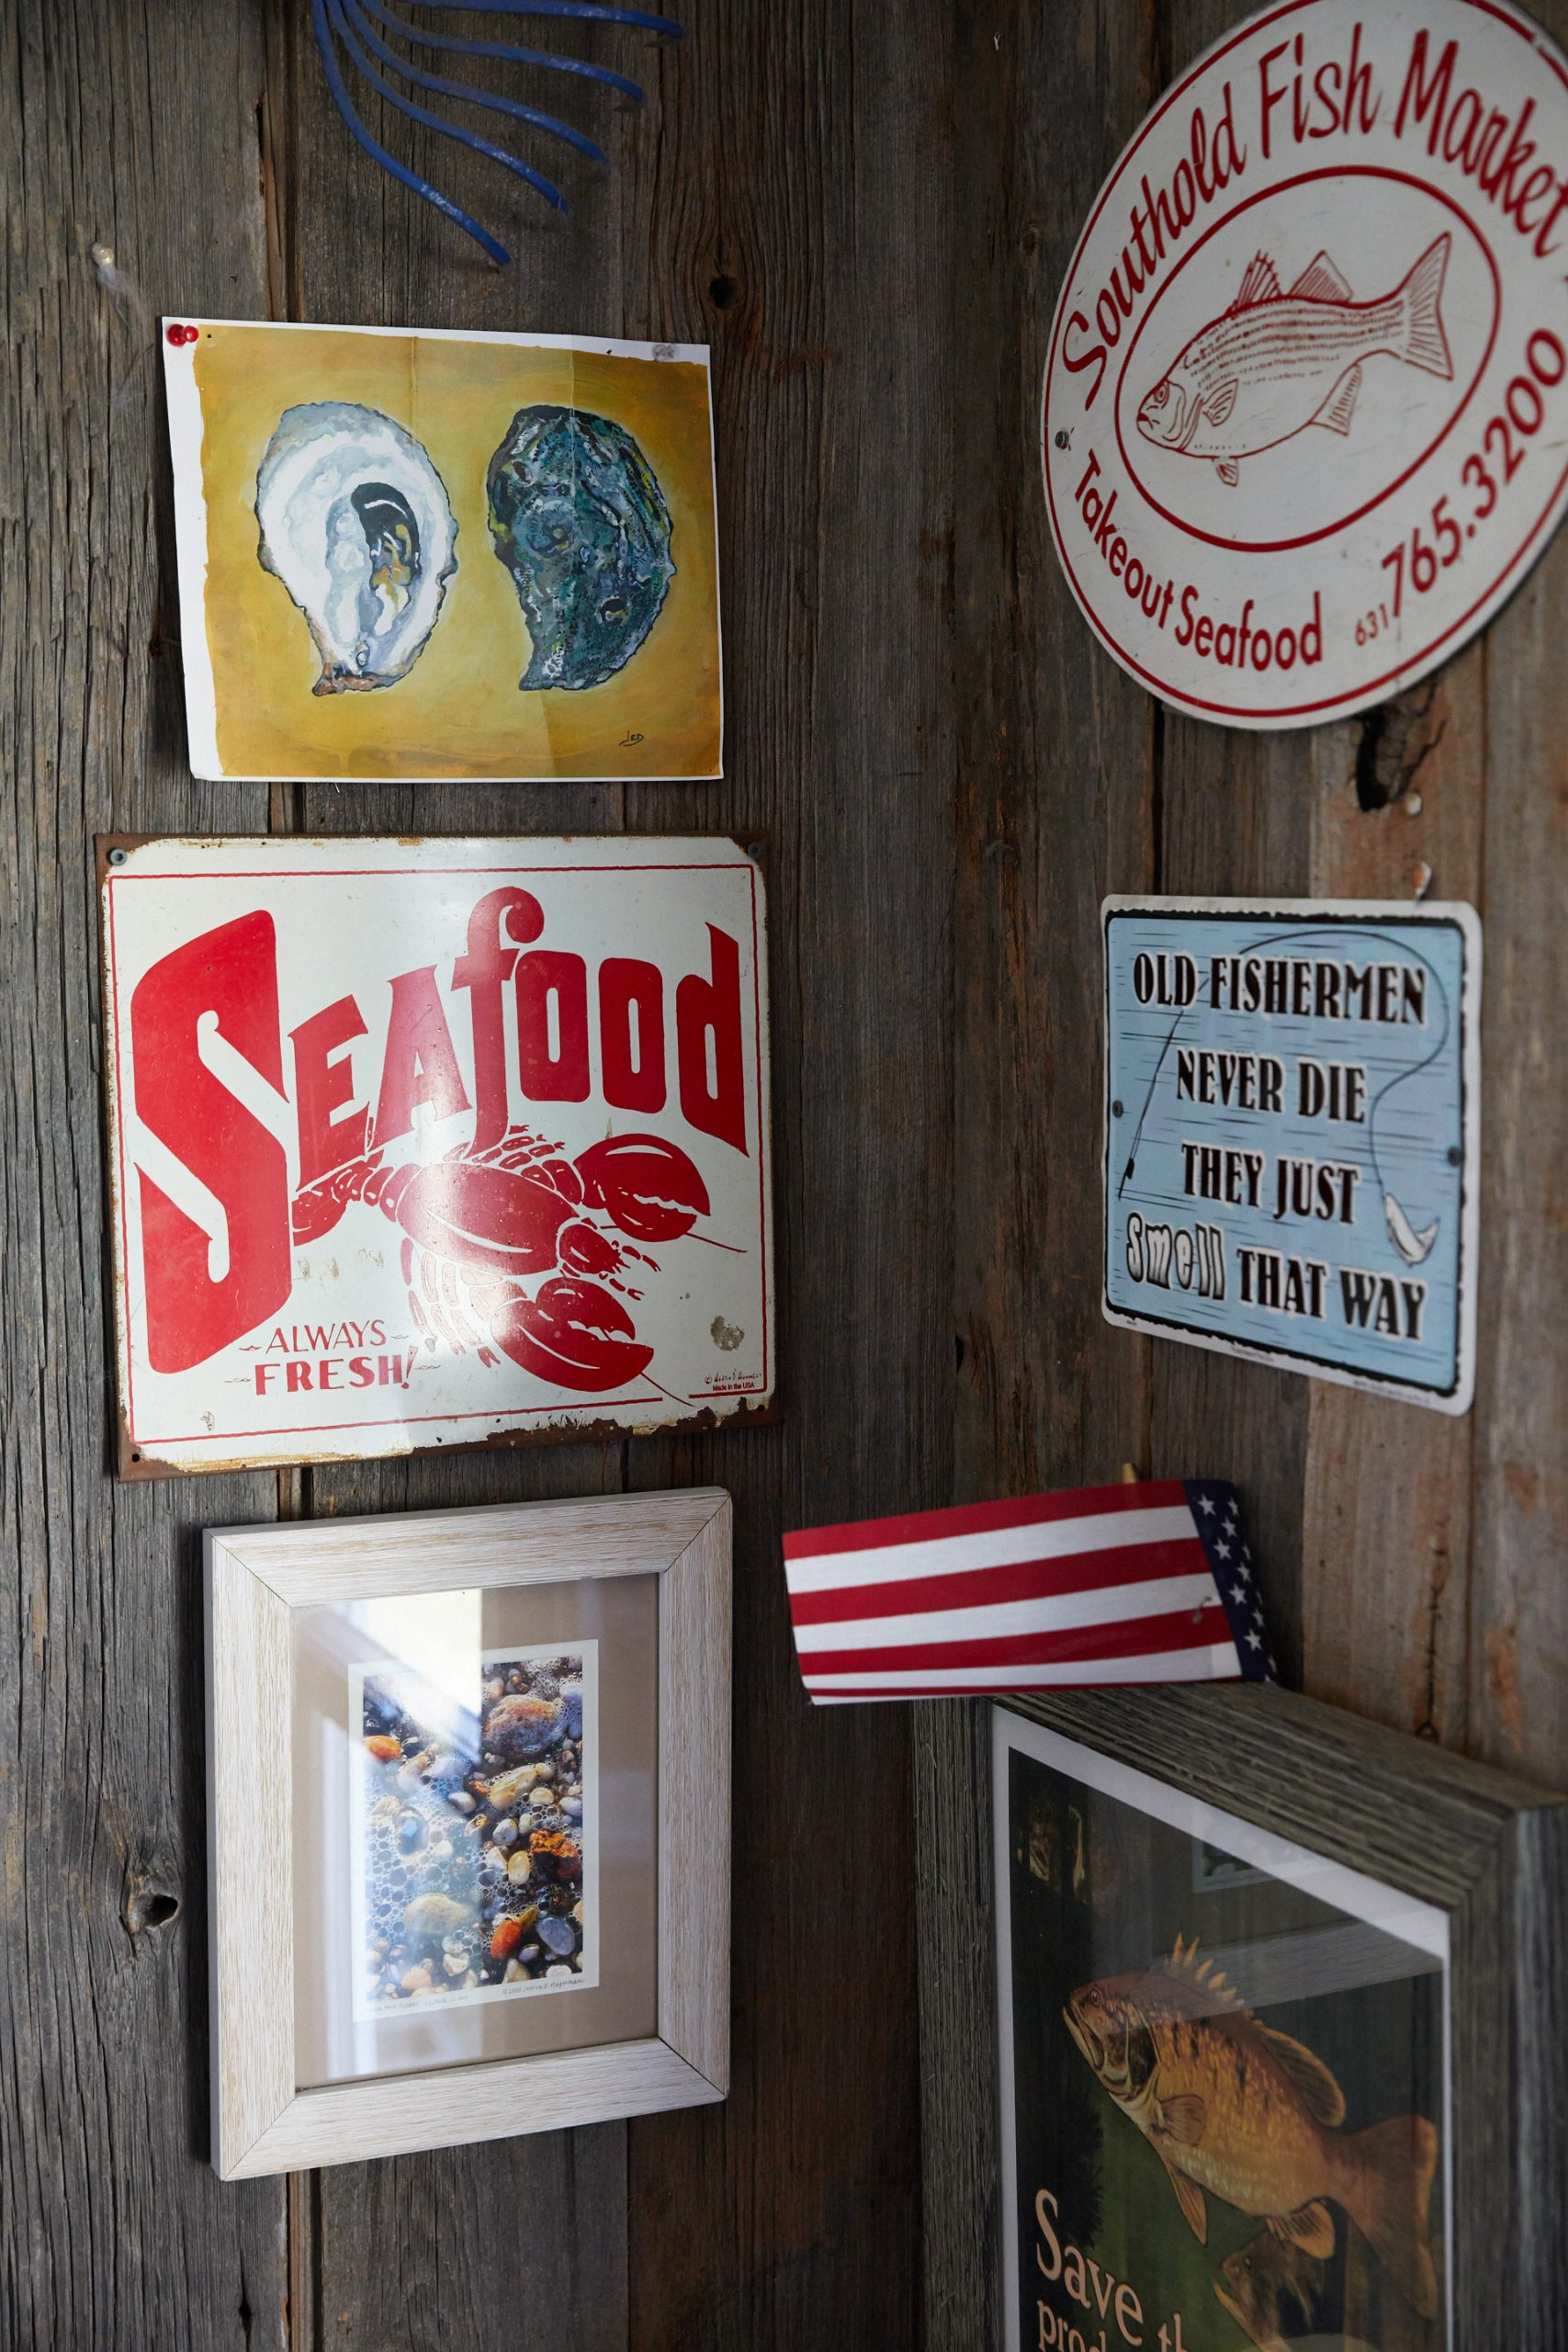 Southold Fish Market